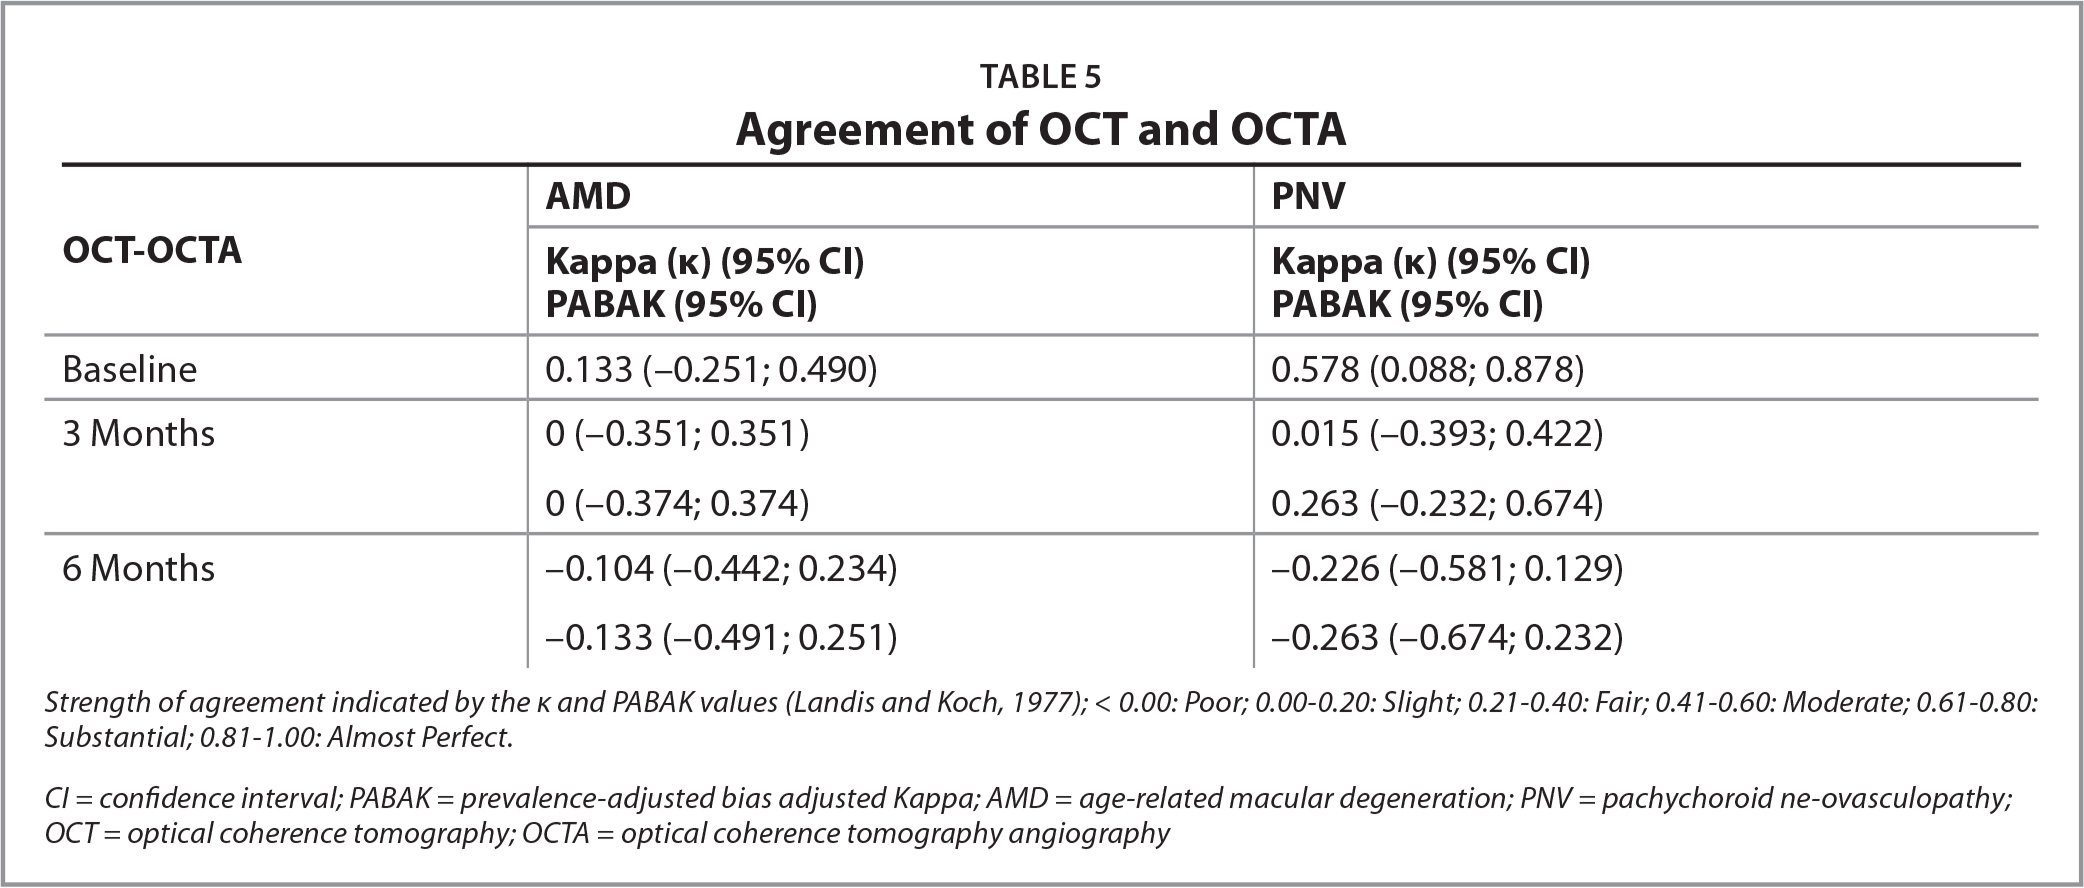 Agreement of OCT and OCTA